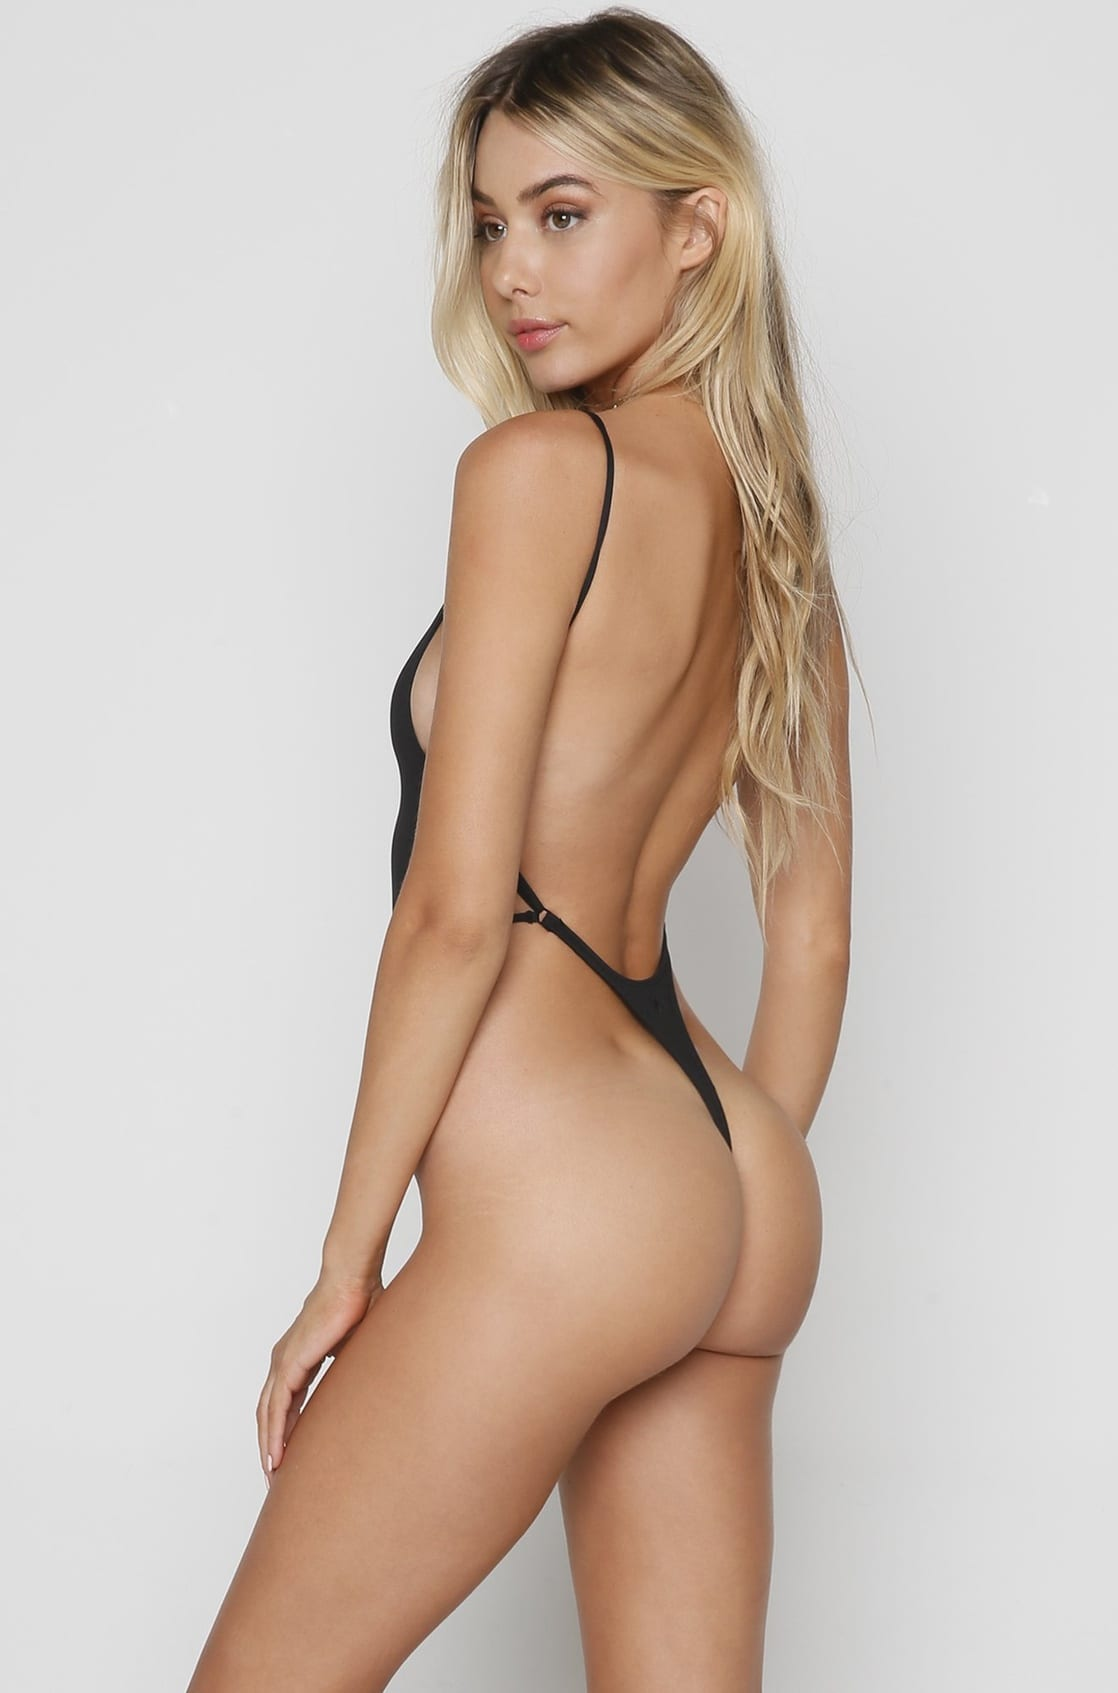 Fotos Celeste Bright naked (66 foto and video), Sexy, Hot, Feet, panties 2020